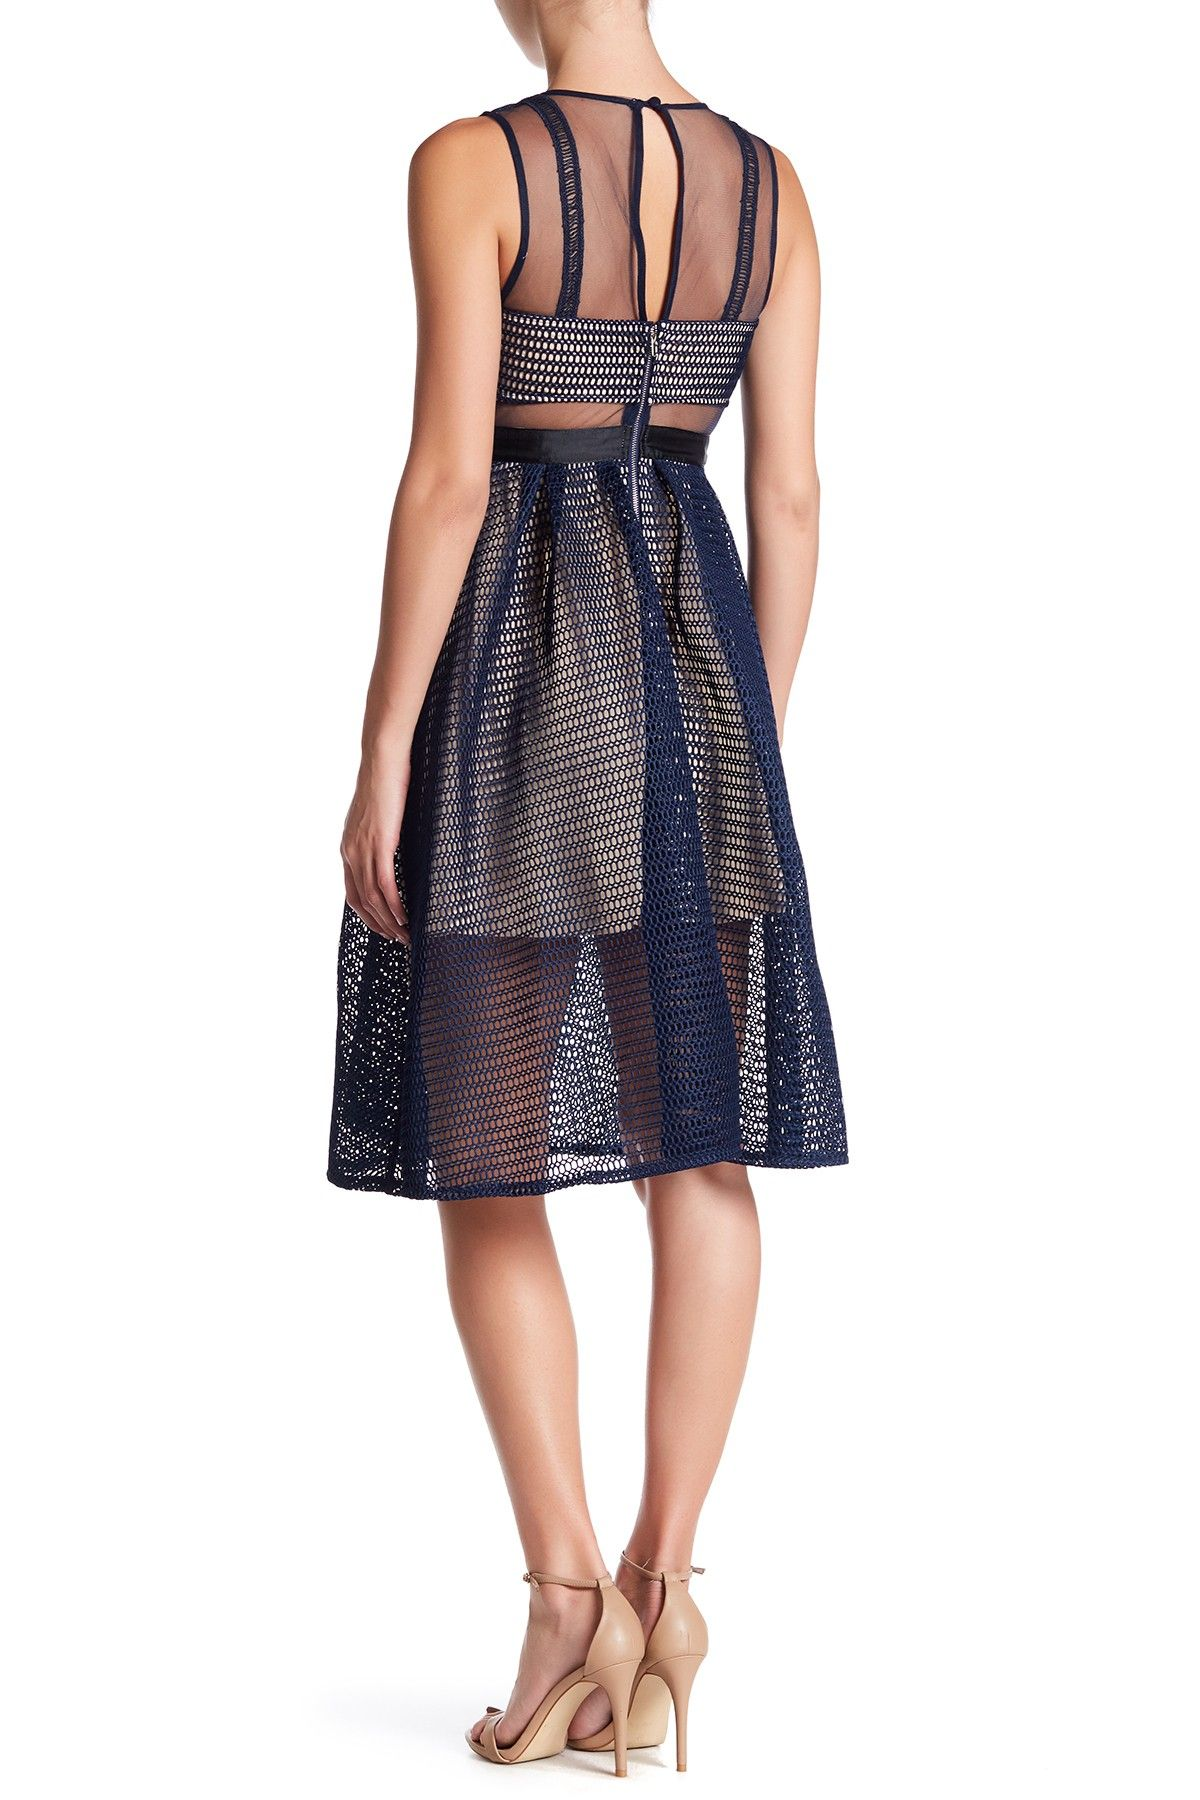 L'Atiste - Eyelet Dress is now 57% off. Free Shipping on orders over $100.